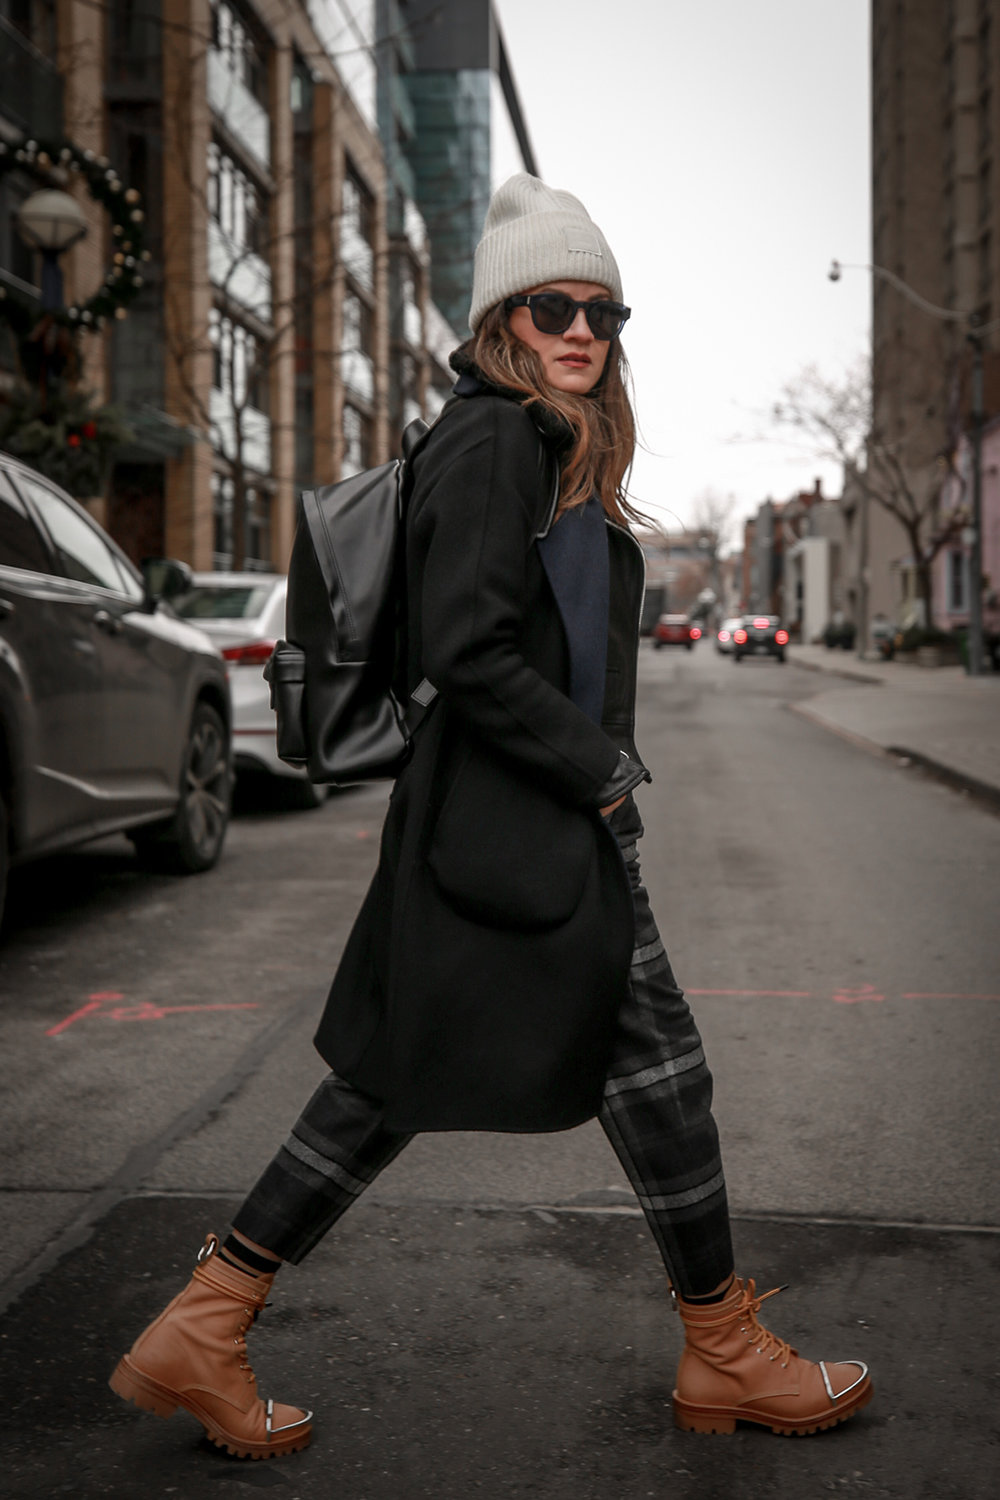 Nathalie Martin wearing Aritzia Chambery plaid pant, Rudsak Mythos leather:shearling jacket, Alexander Wang Lyndon boots, Acne Studios Pansy face beanie ivory, Saint Laurent blue square glasses, Rag & Bone wool reversible coat, woahstyle.com_4440.jpg